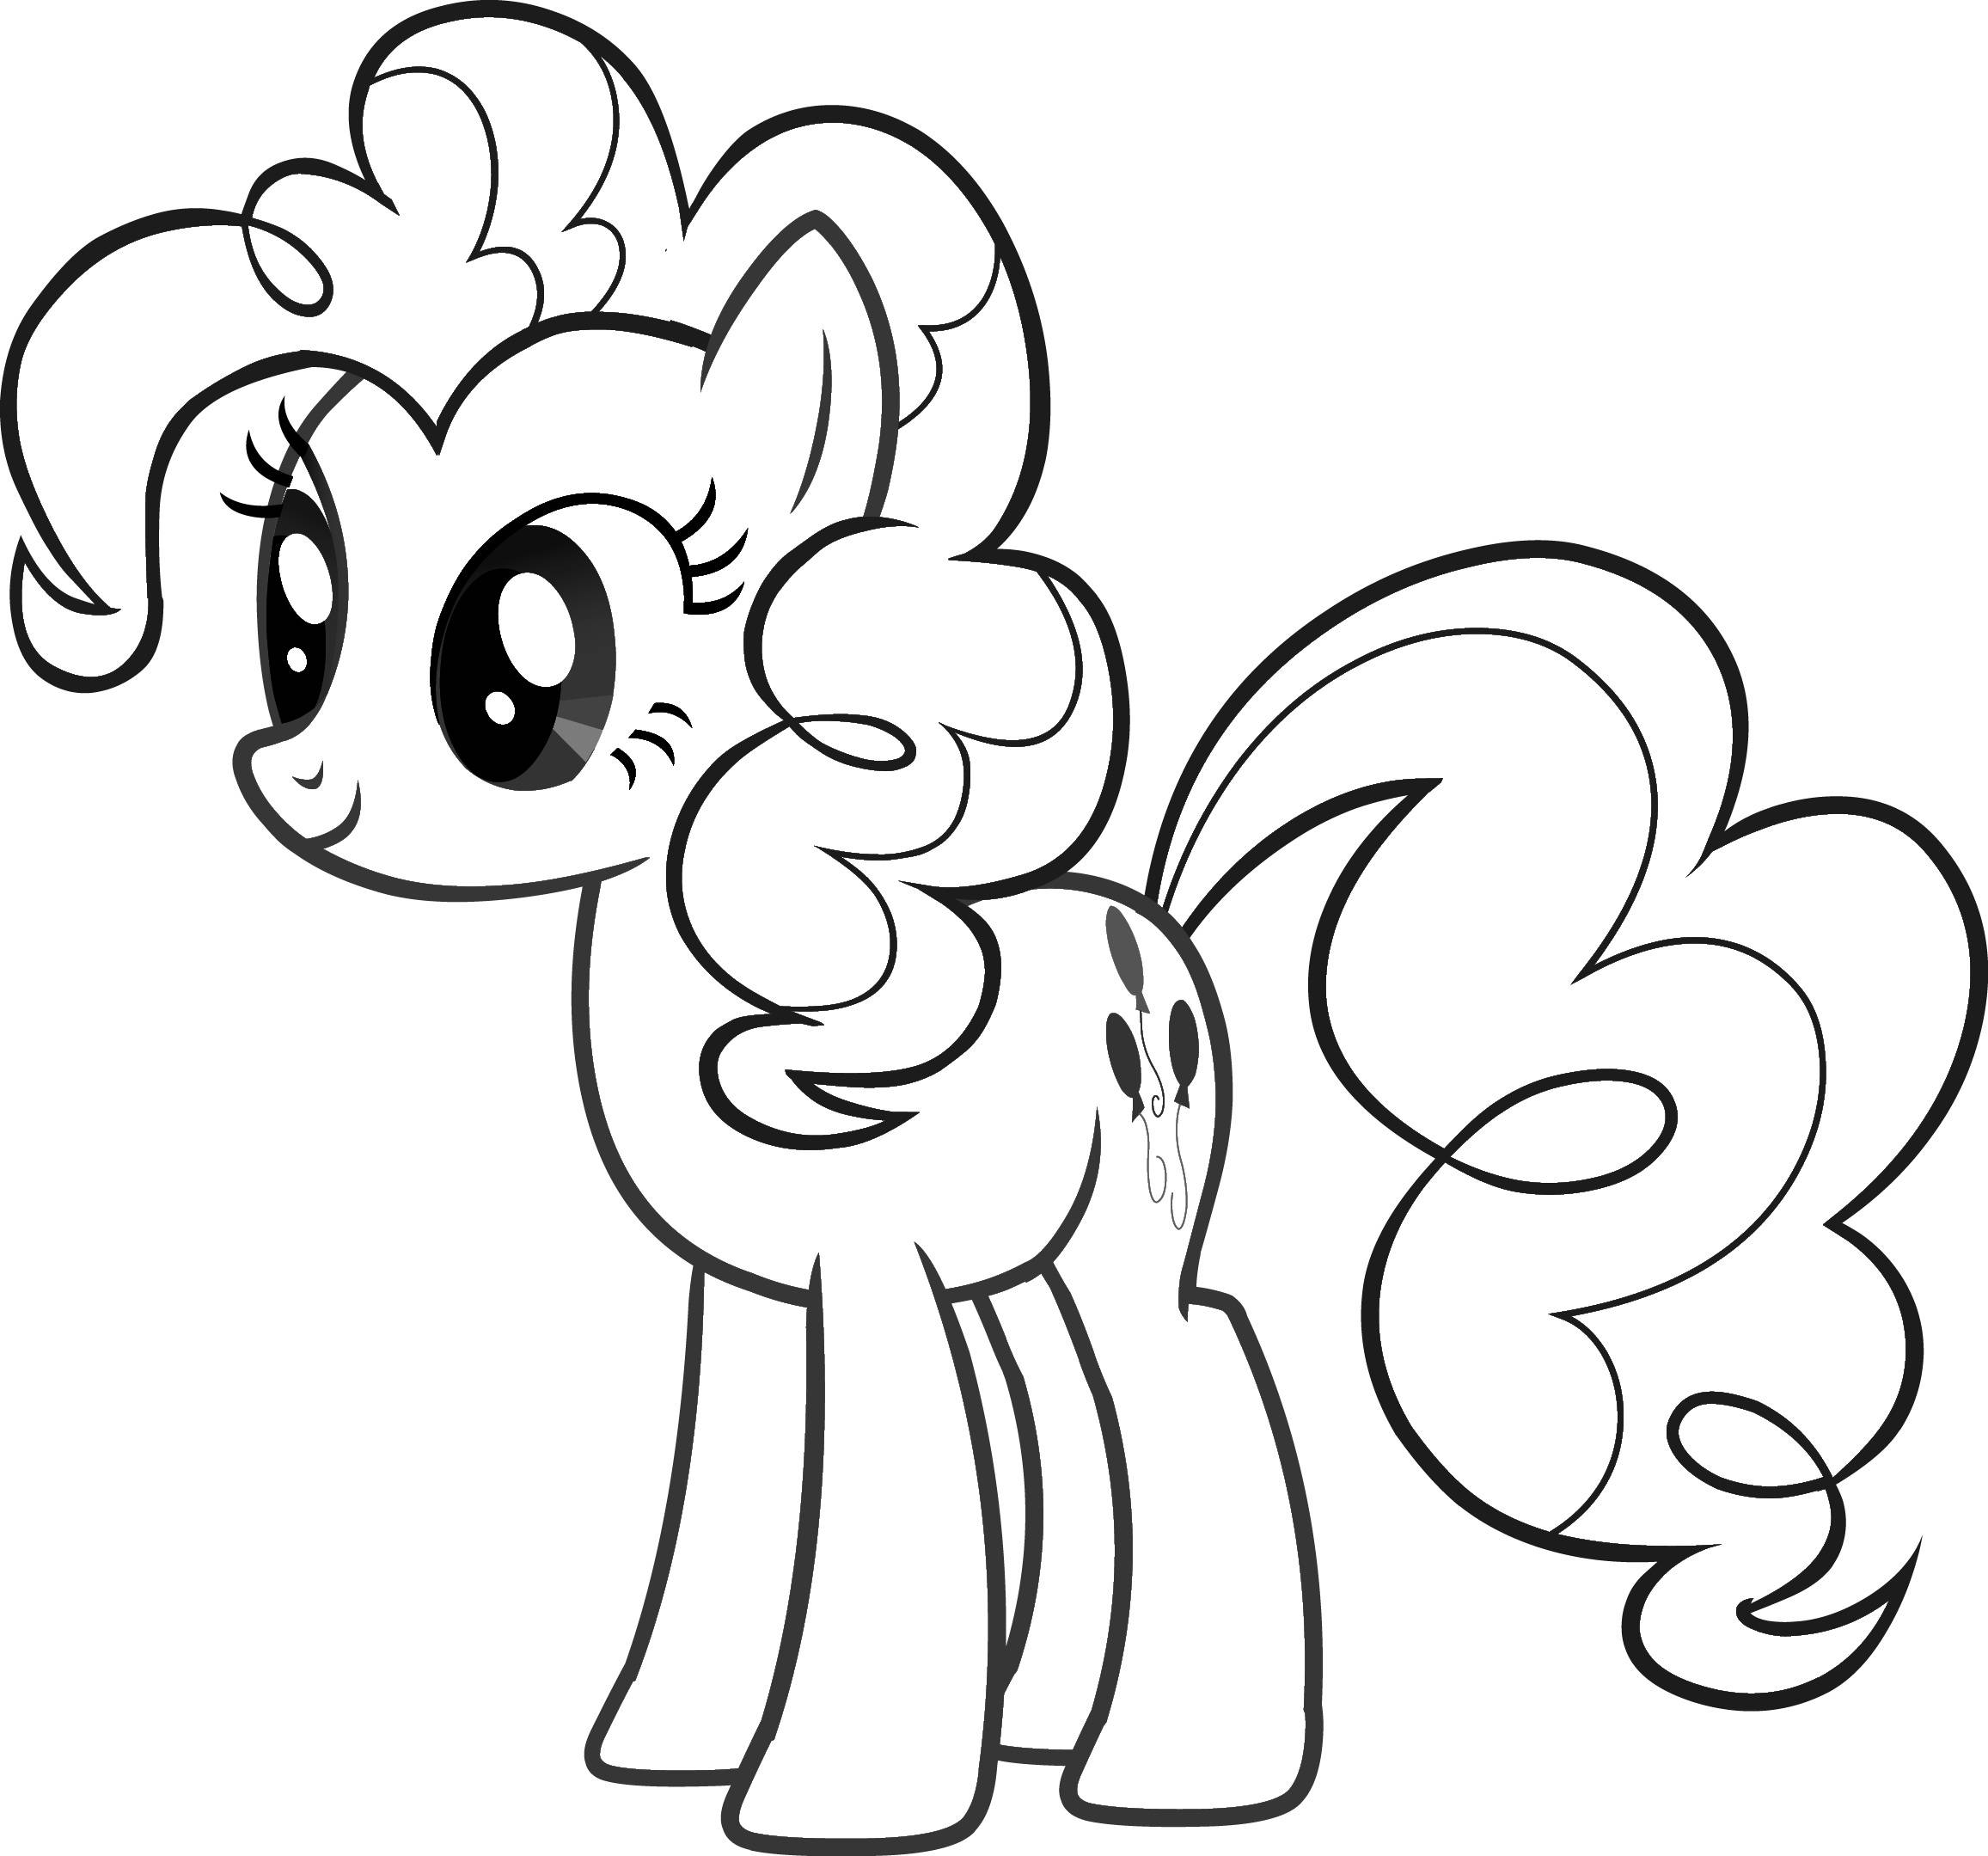 My Little Pony Coloring Pages To Print Glamorous Free Printable My Little Pony Coloring Pages For Kids Inspiration